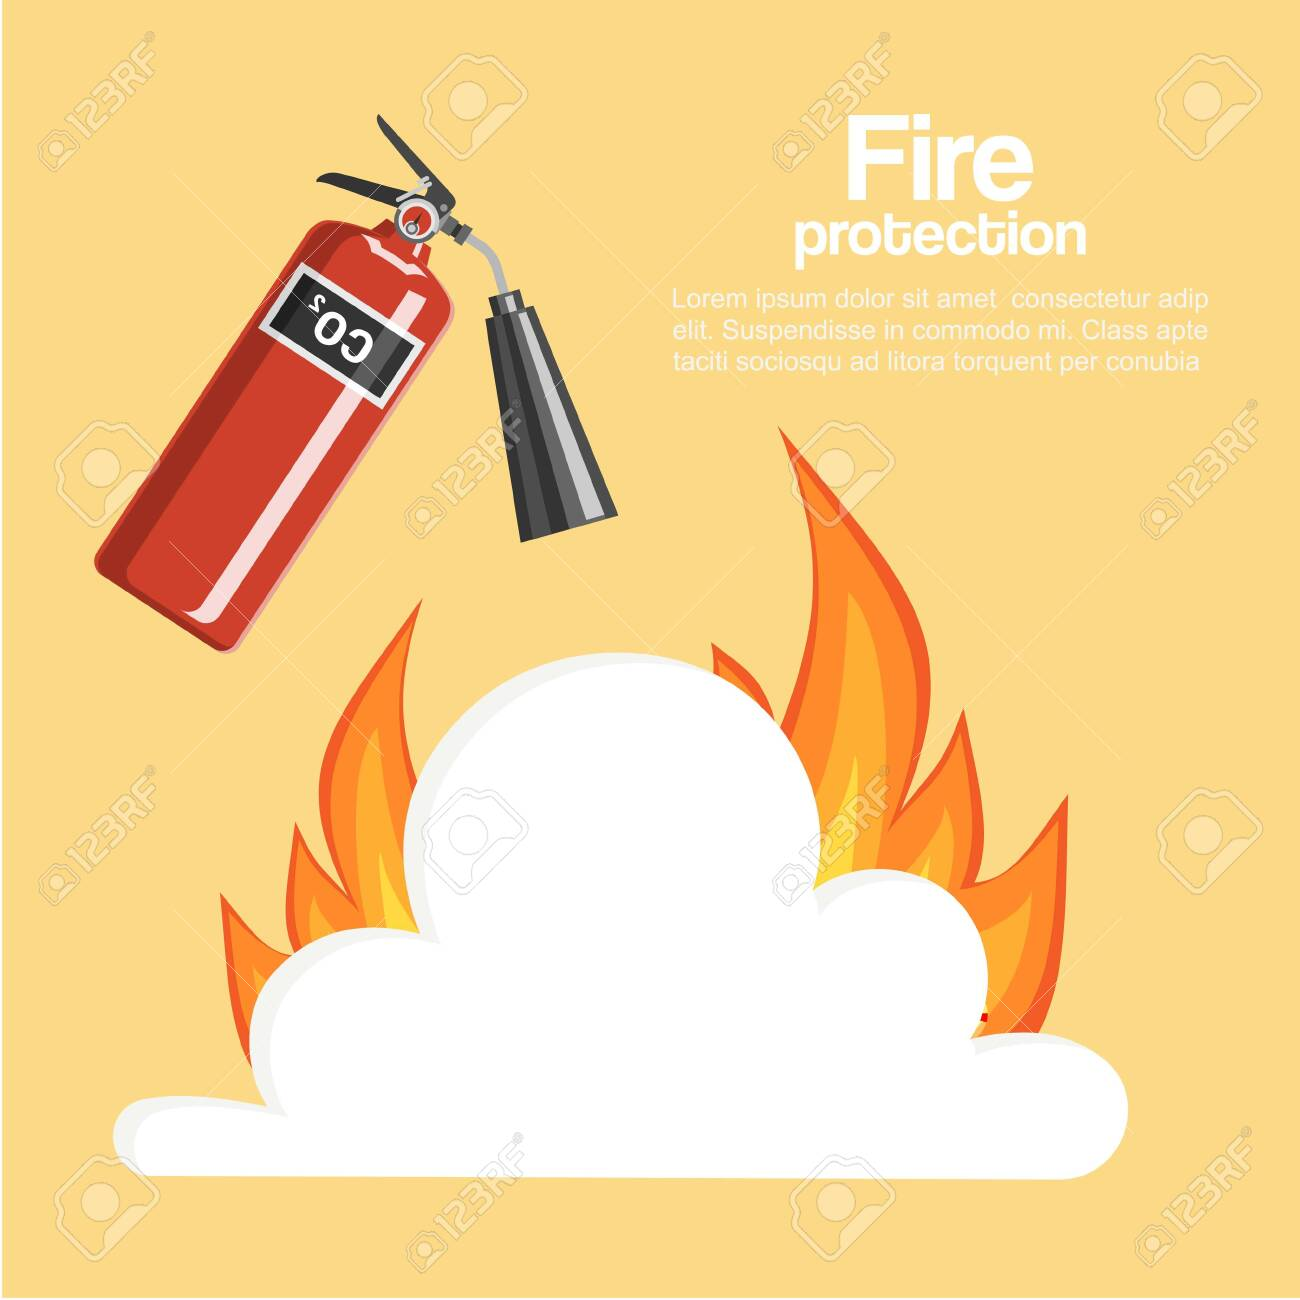 fire protection poster vector illustration cartoon fire extinguisher